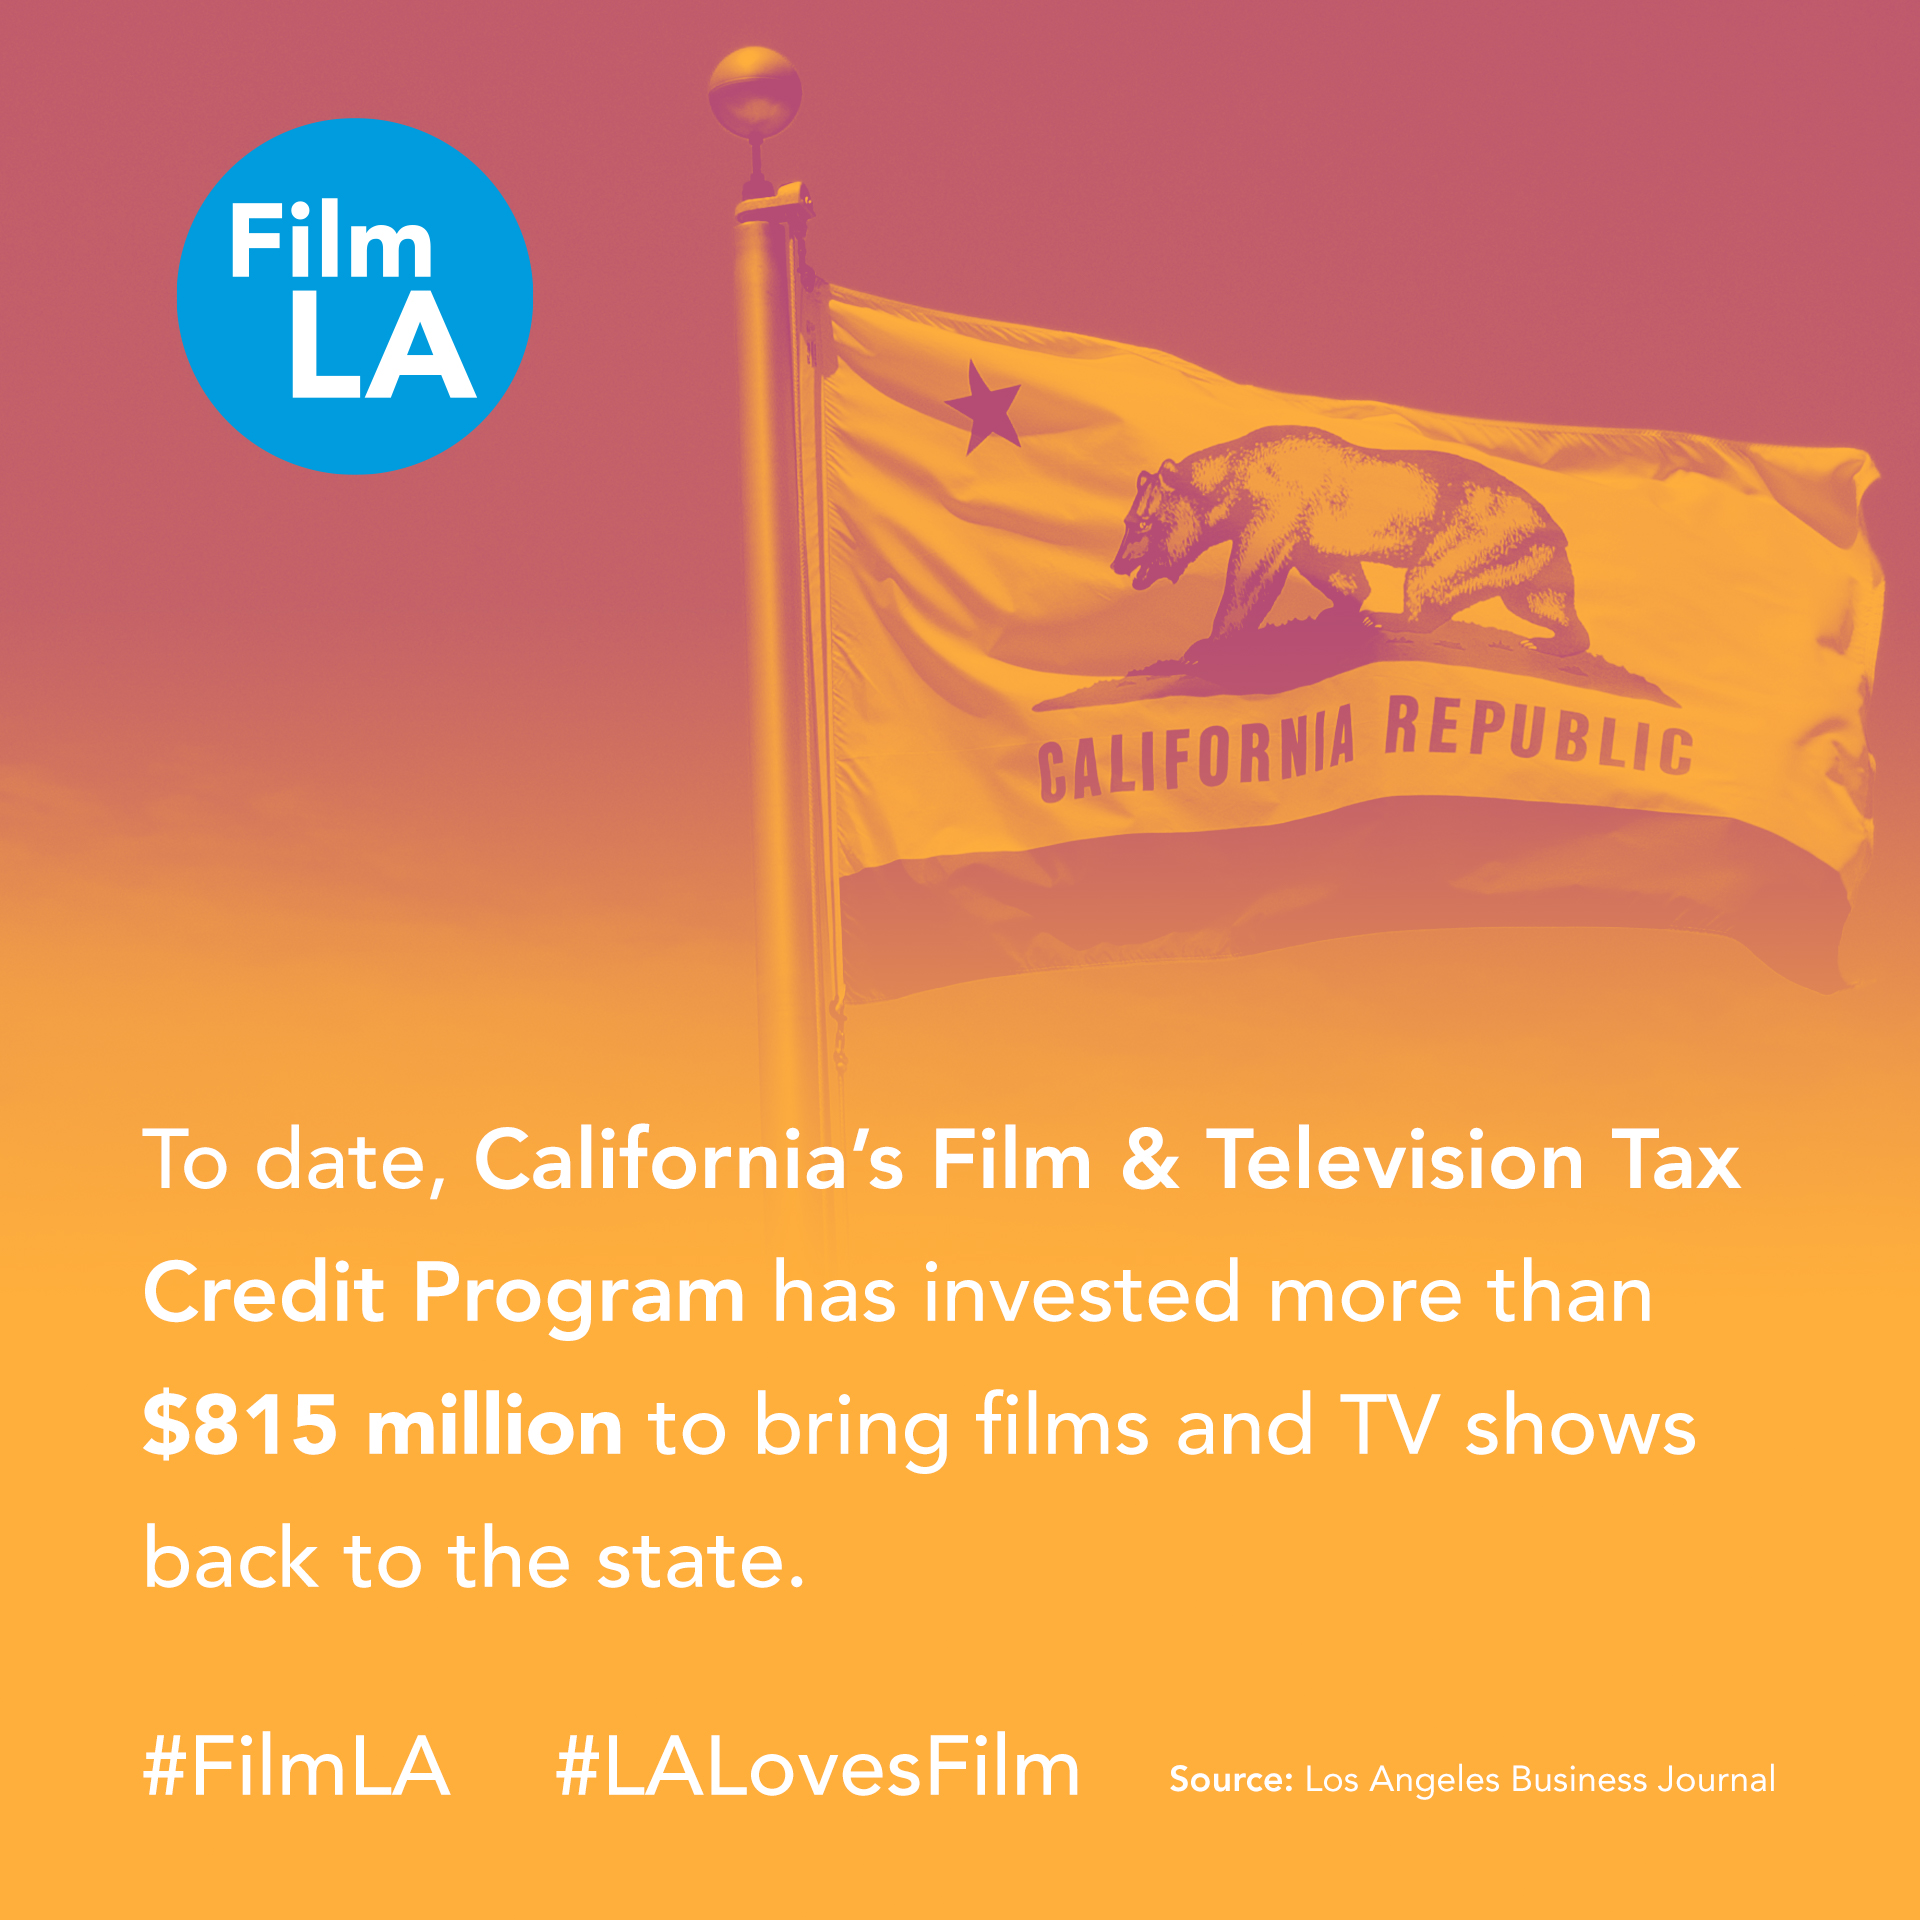 California Film and TV Tax Credit